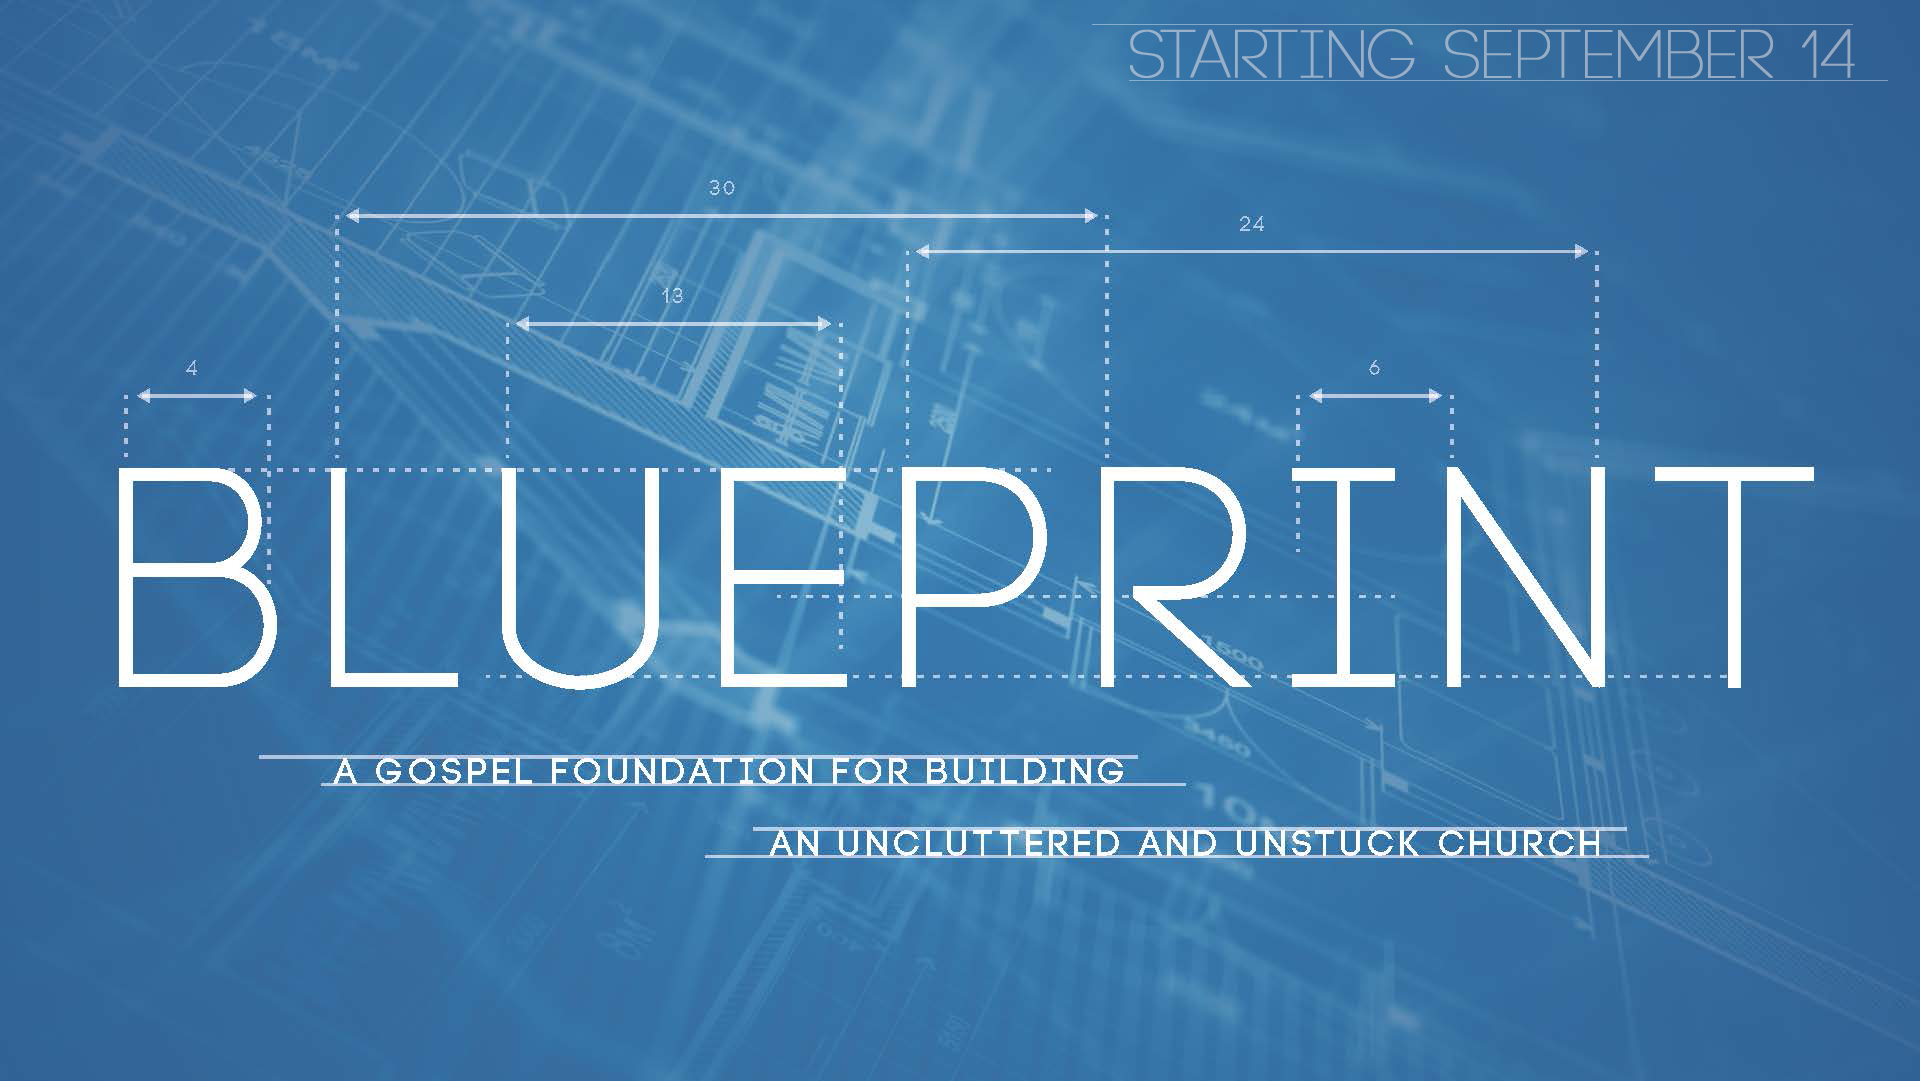 Blueprint engage equip blueprint bluprint startsept14 malvernweather Images